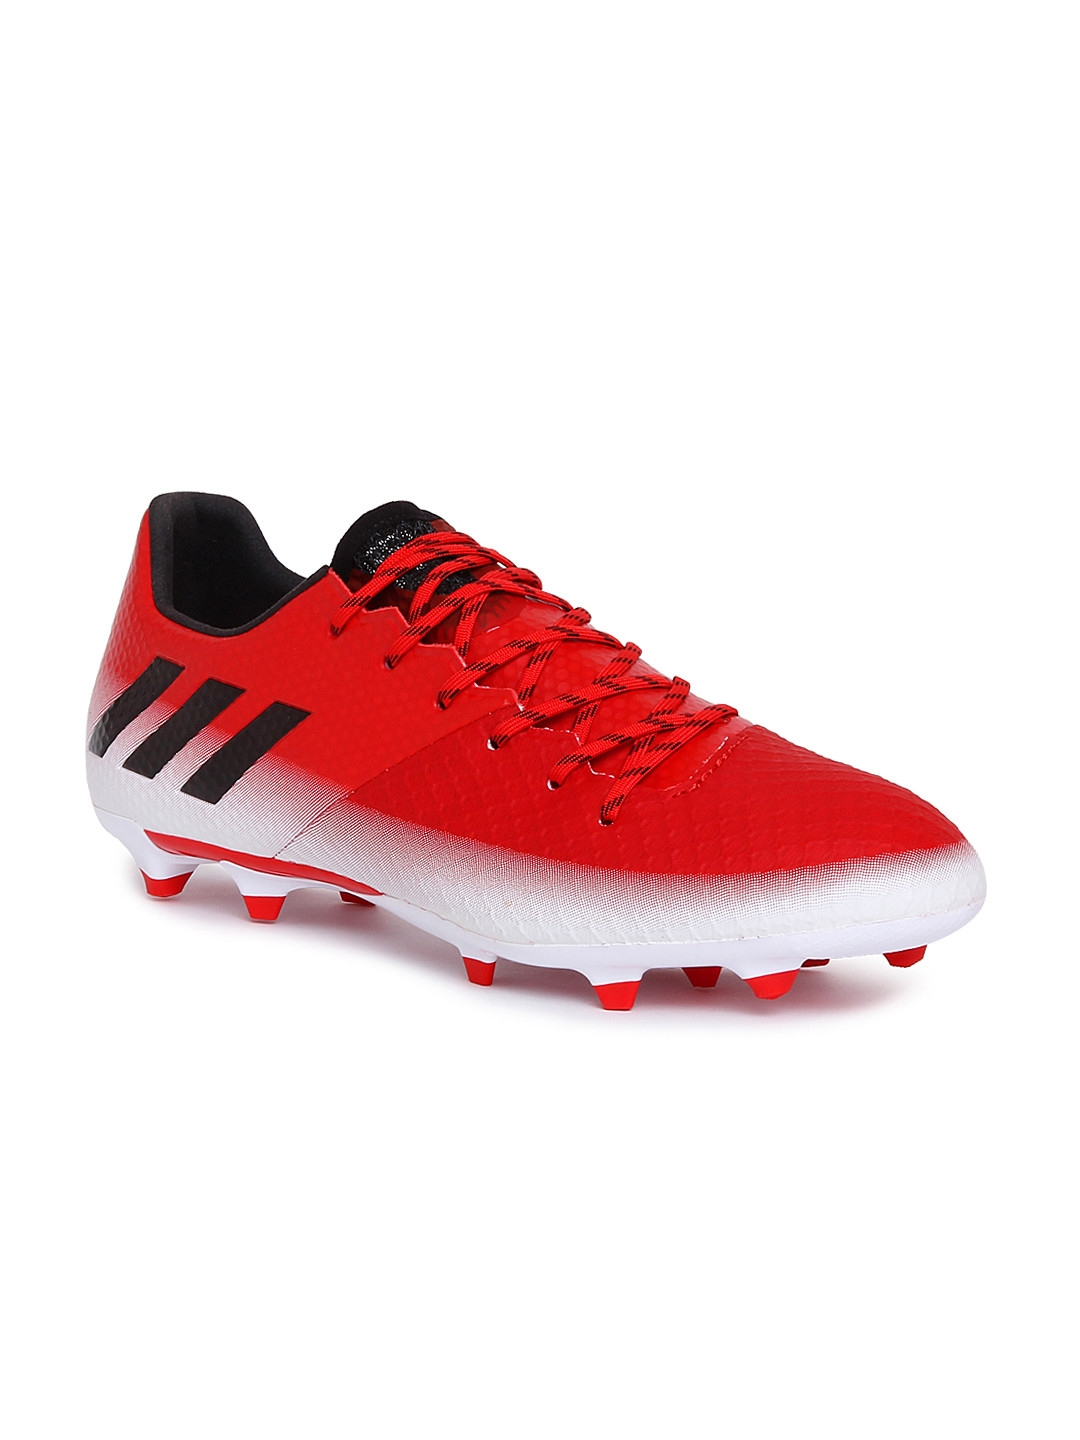 ADIDAS Men Red Messi 16.2 FG Football Shoes